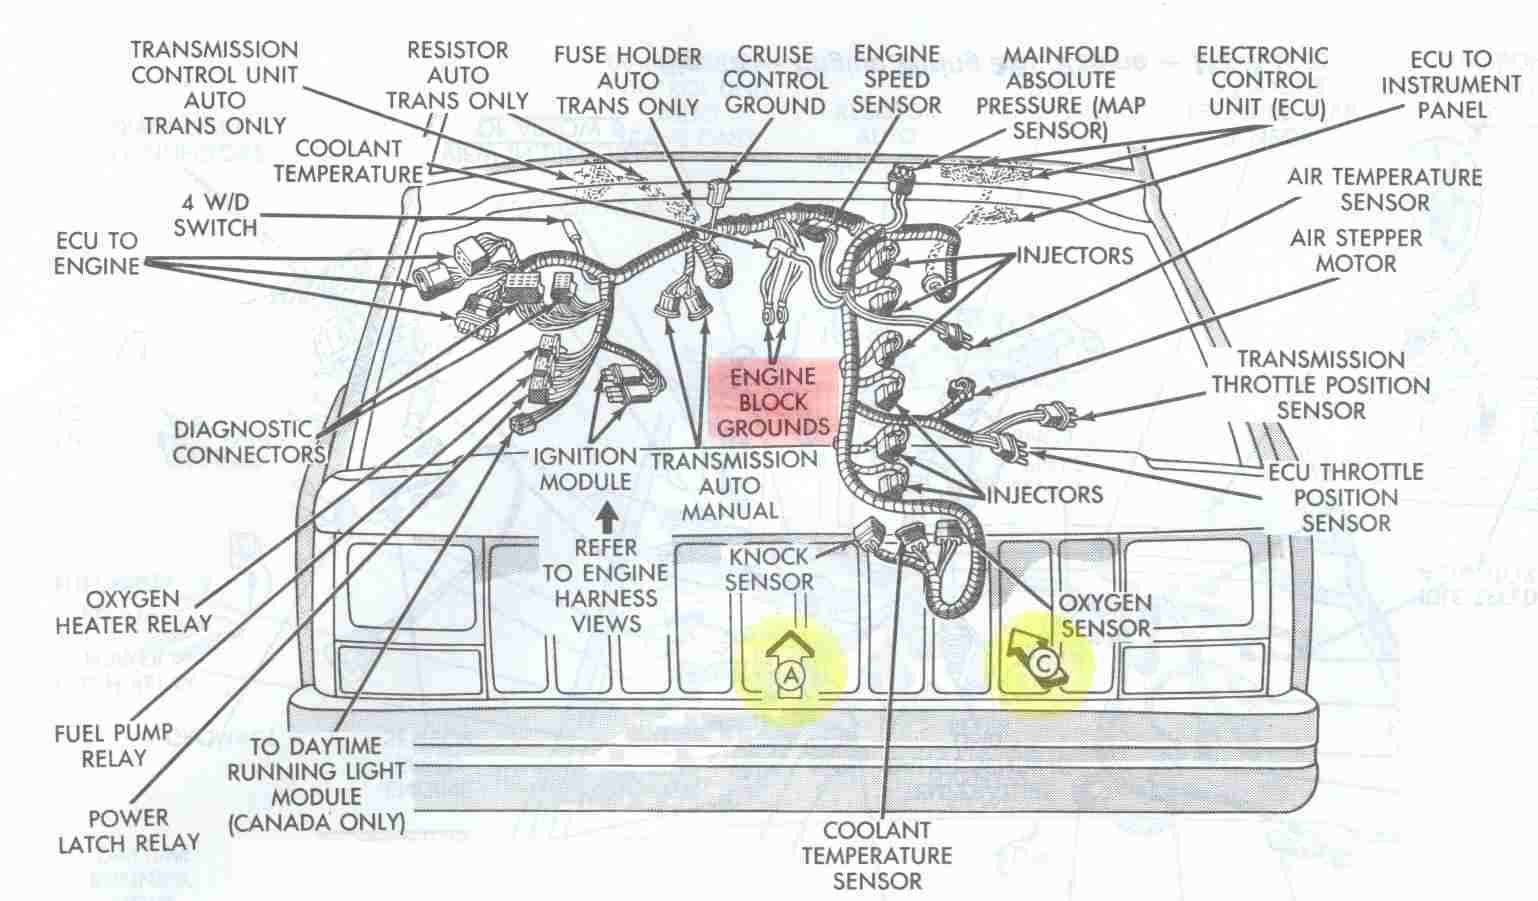 Engine bay schematic showing major electrical ground points for 40l engine bay schematic showing major electrical ground points for 40l jeep cherokee engines publicscrutiny Image collections